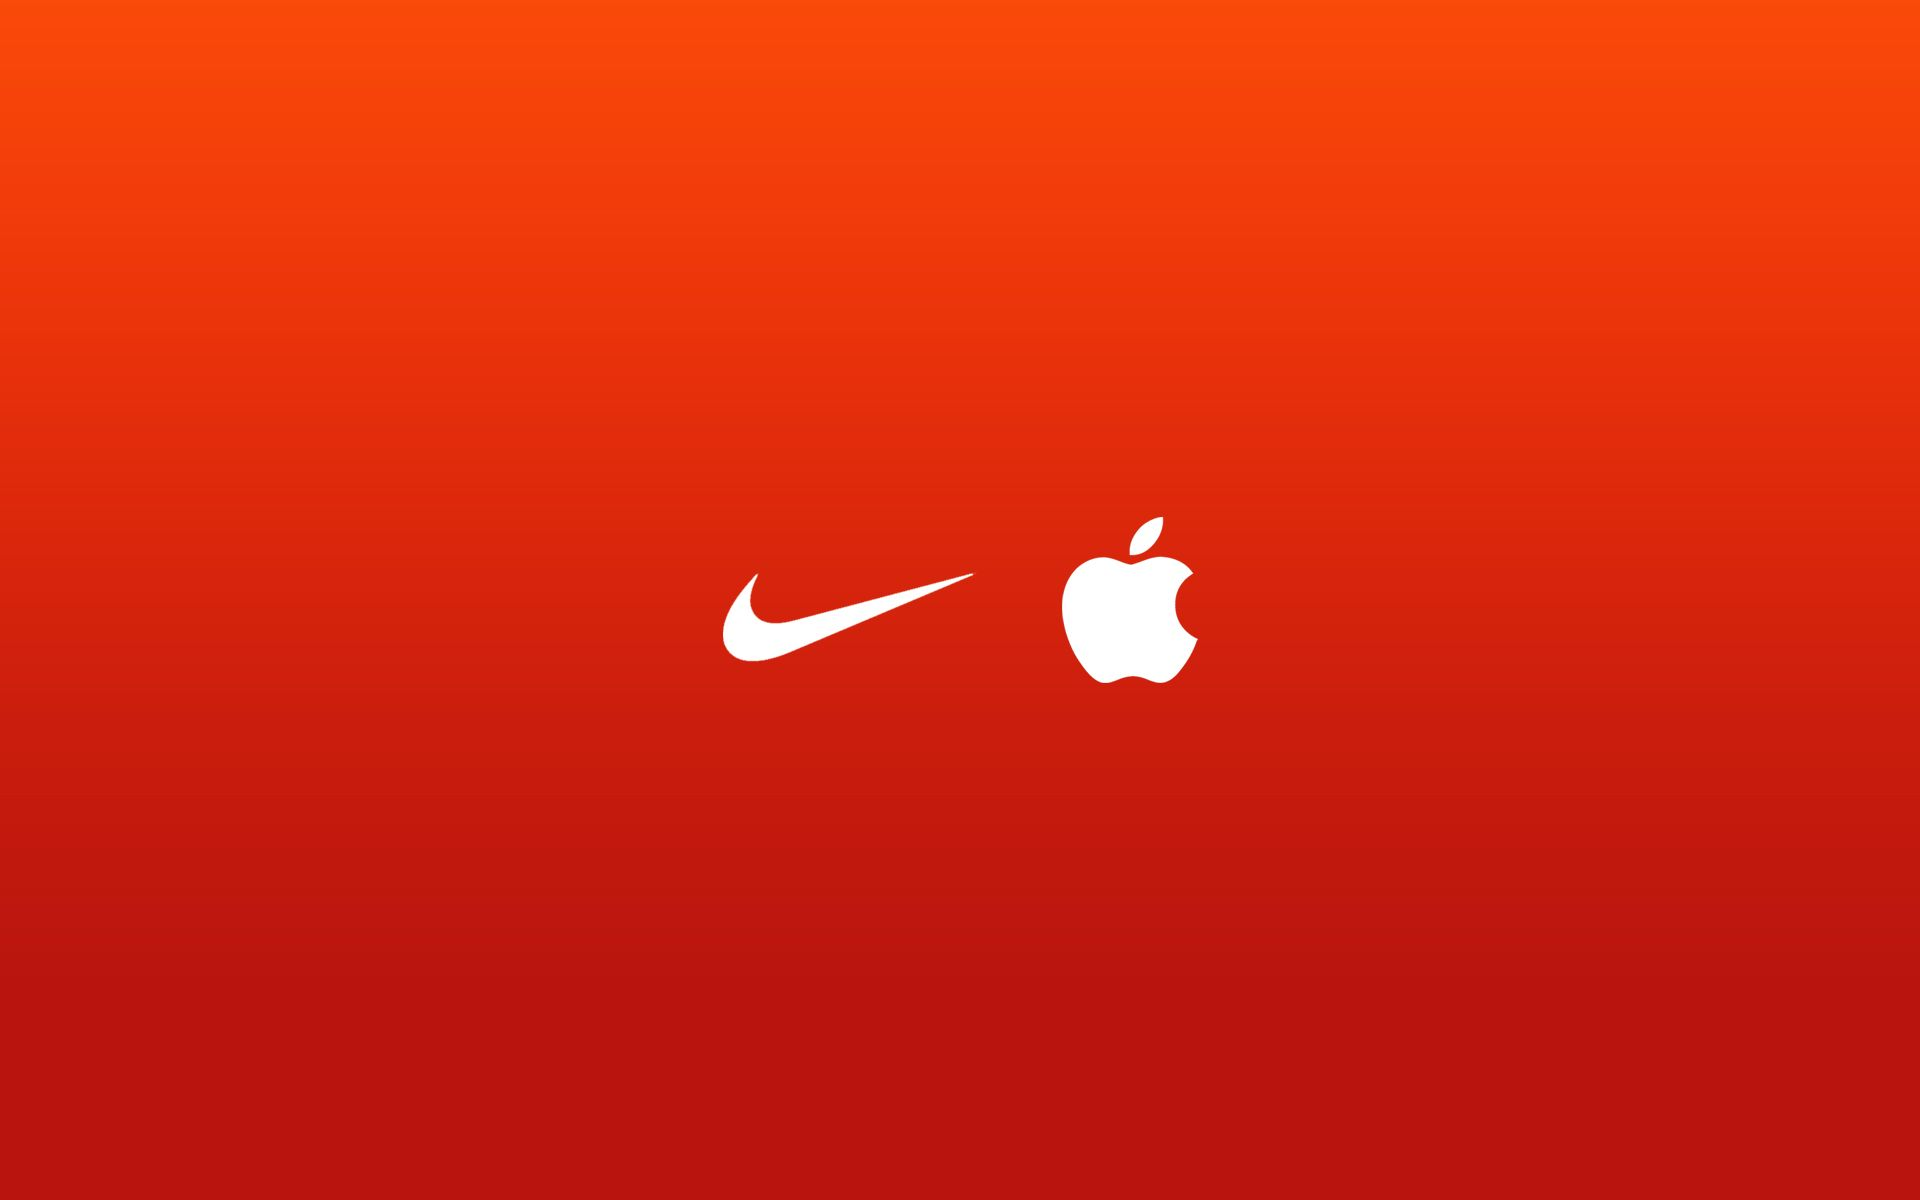 nike logo wallpapers